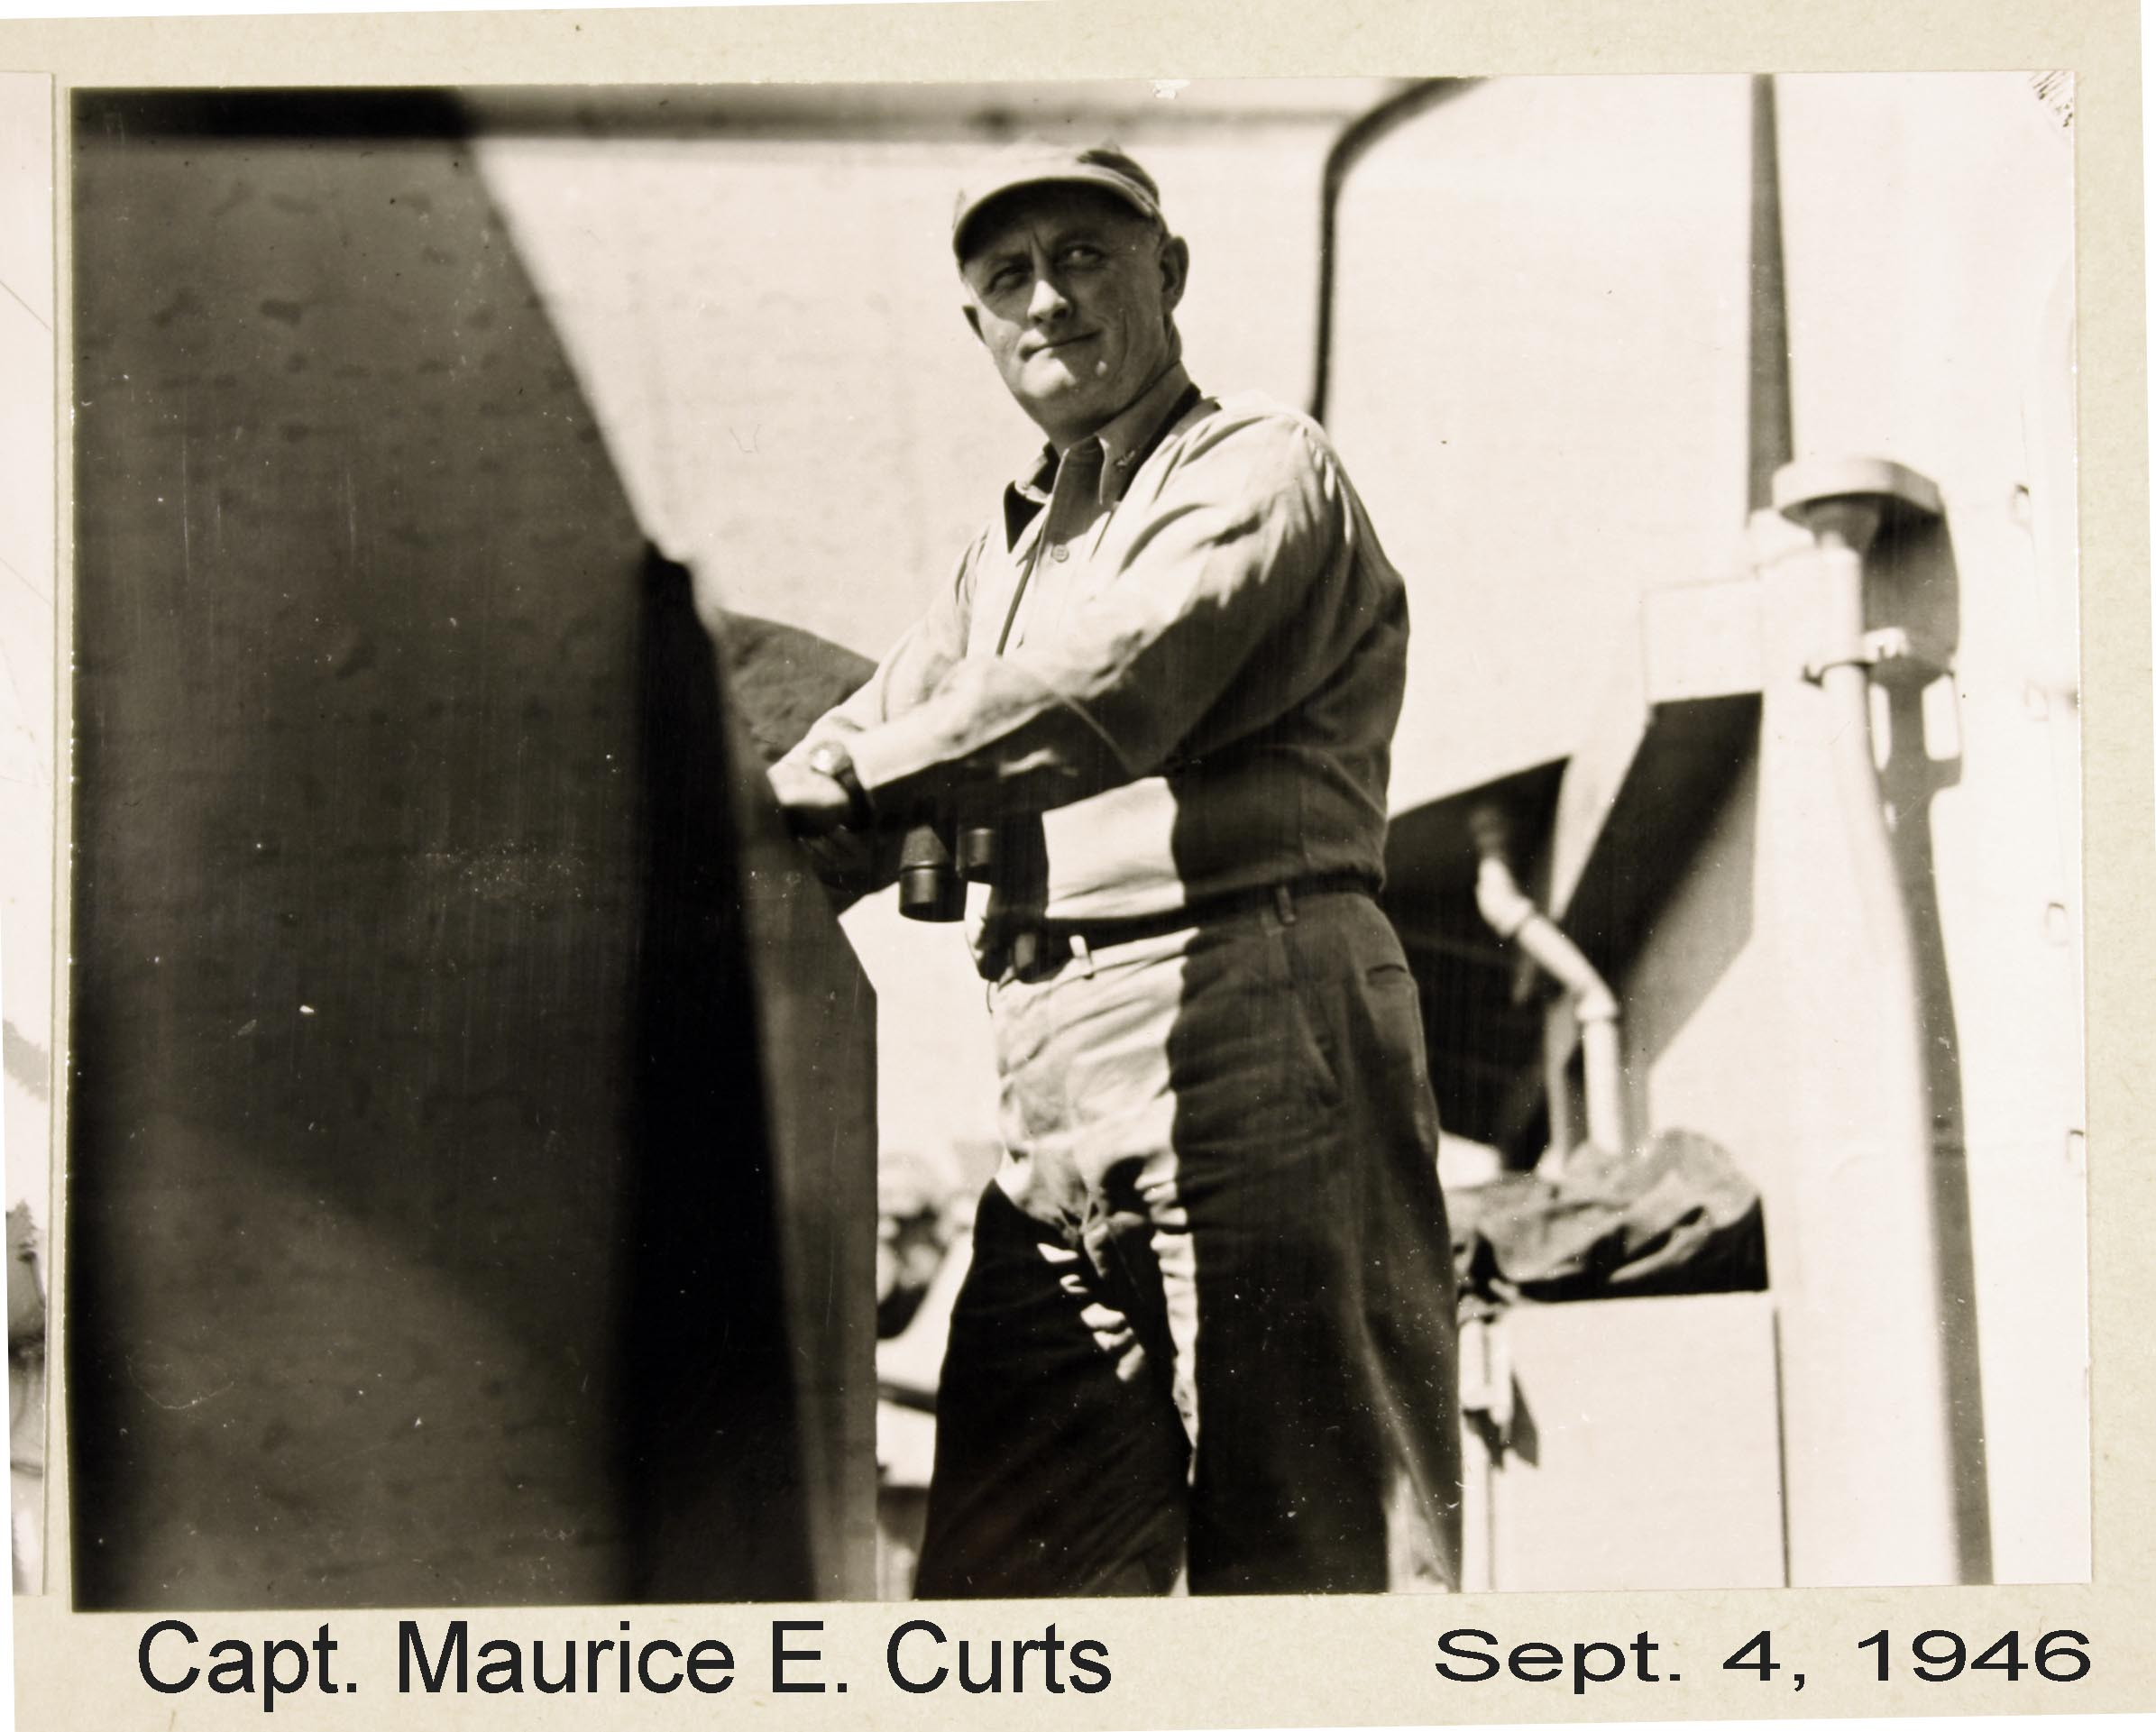 Captain Curts standing at railing